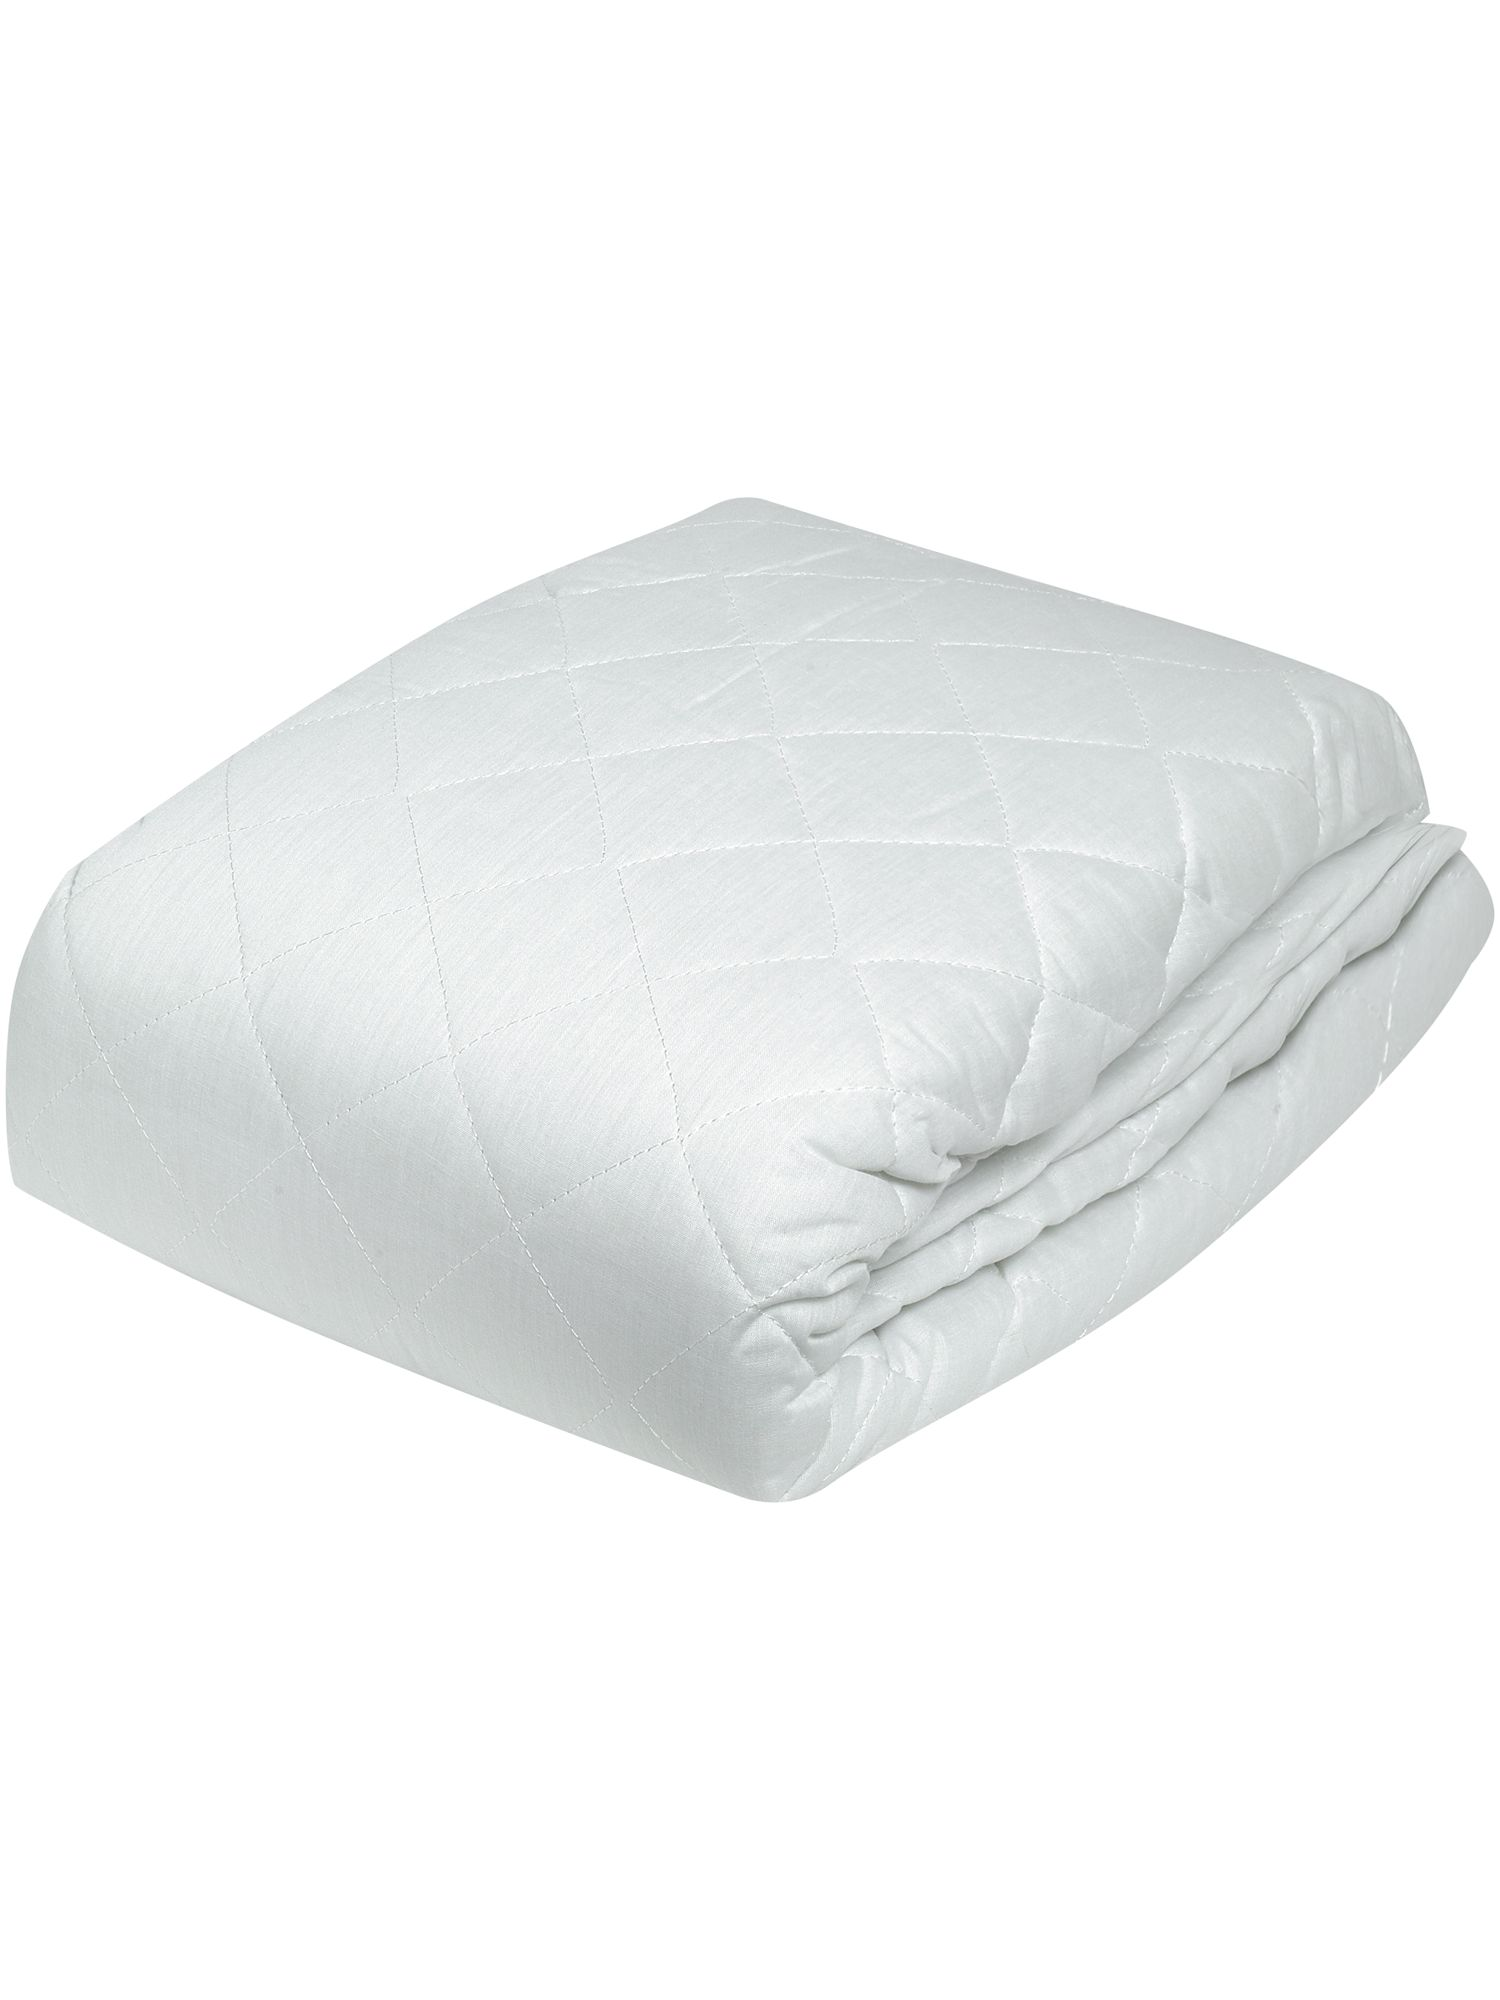 Regency Mattress and pillow protector king set